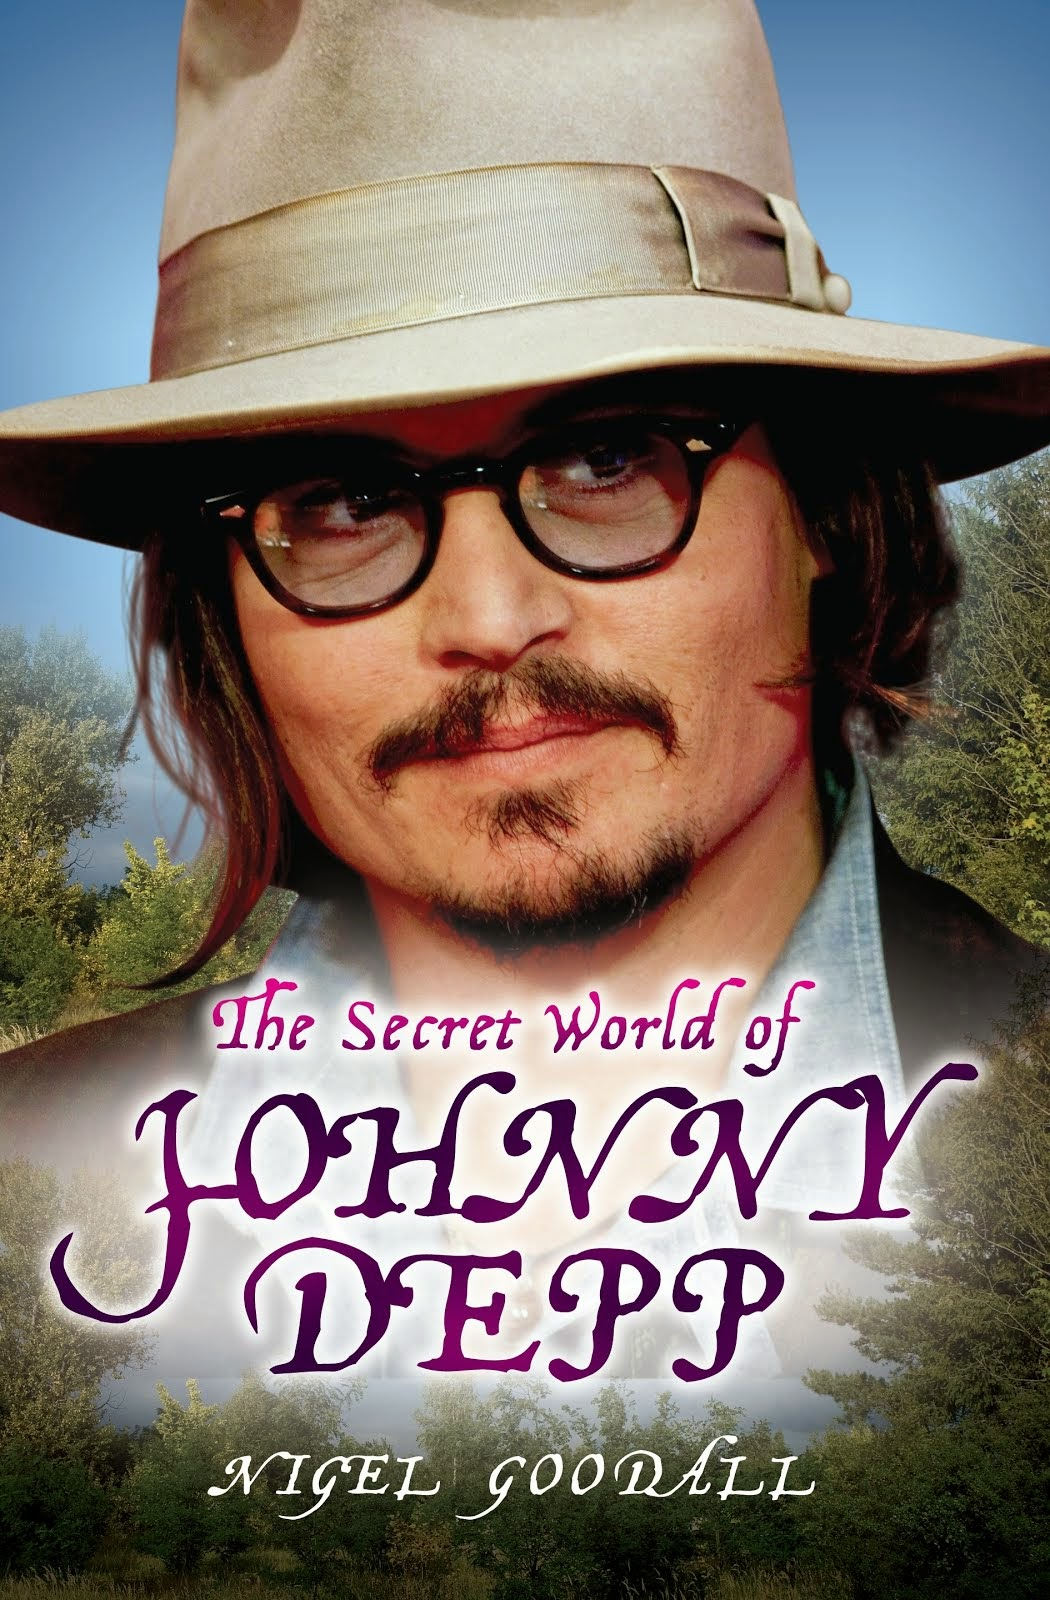 The Secret World of Johnny Depp